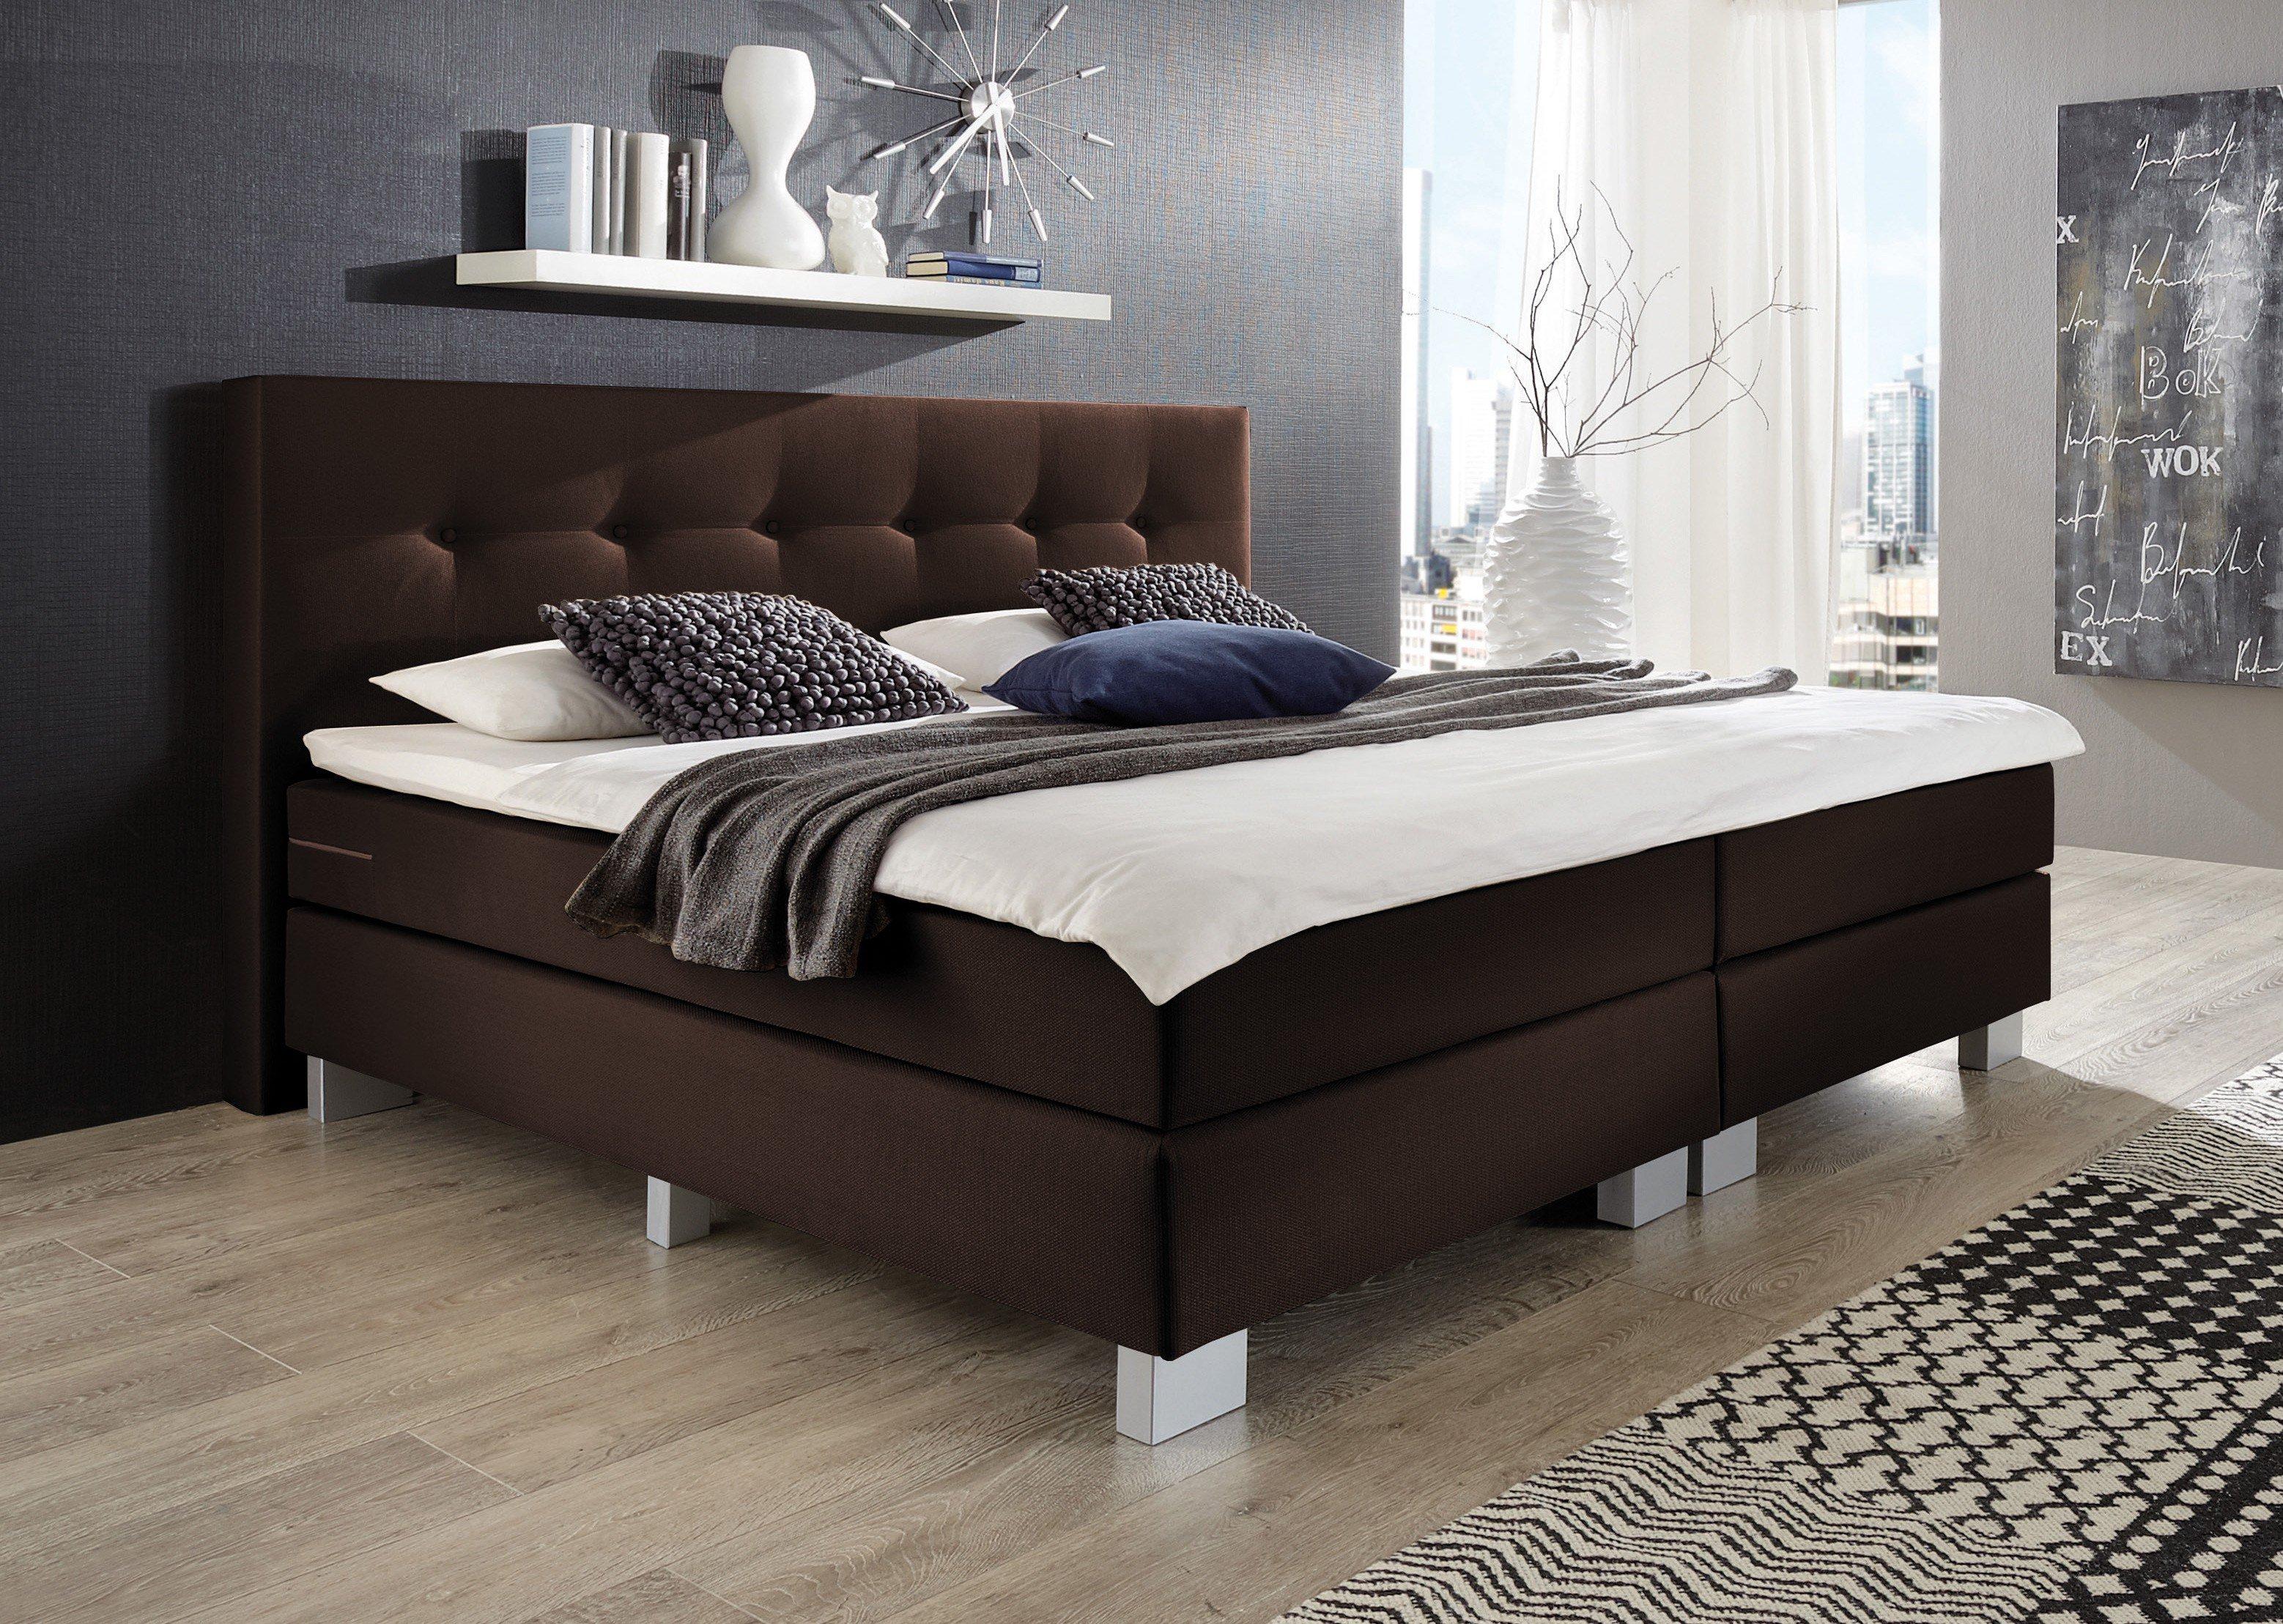 max berger boxspringbett. Black Bedroom Furniture Sets. Home Design Ideas